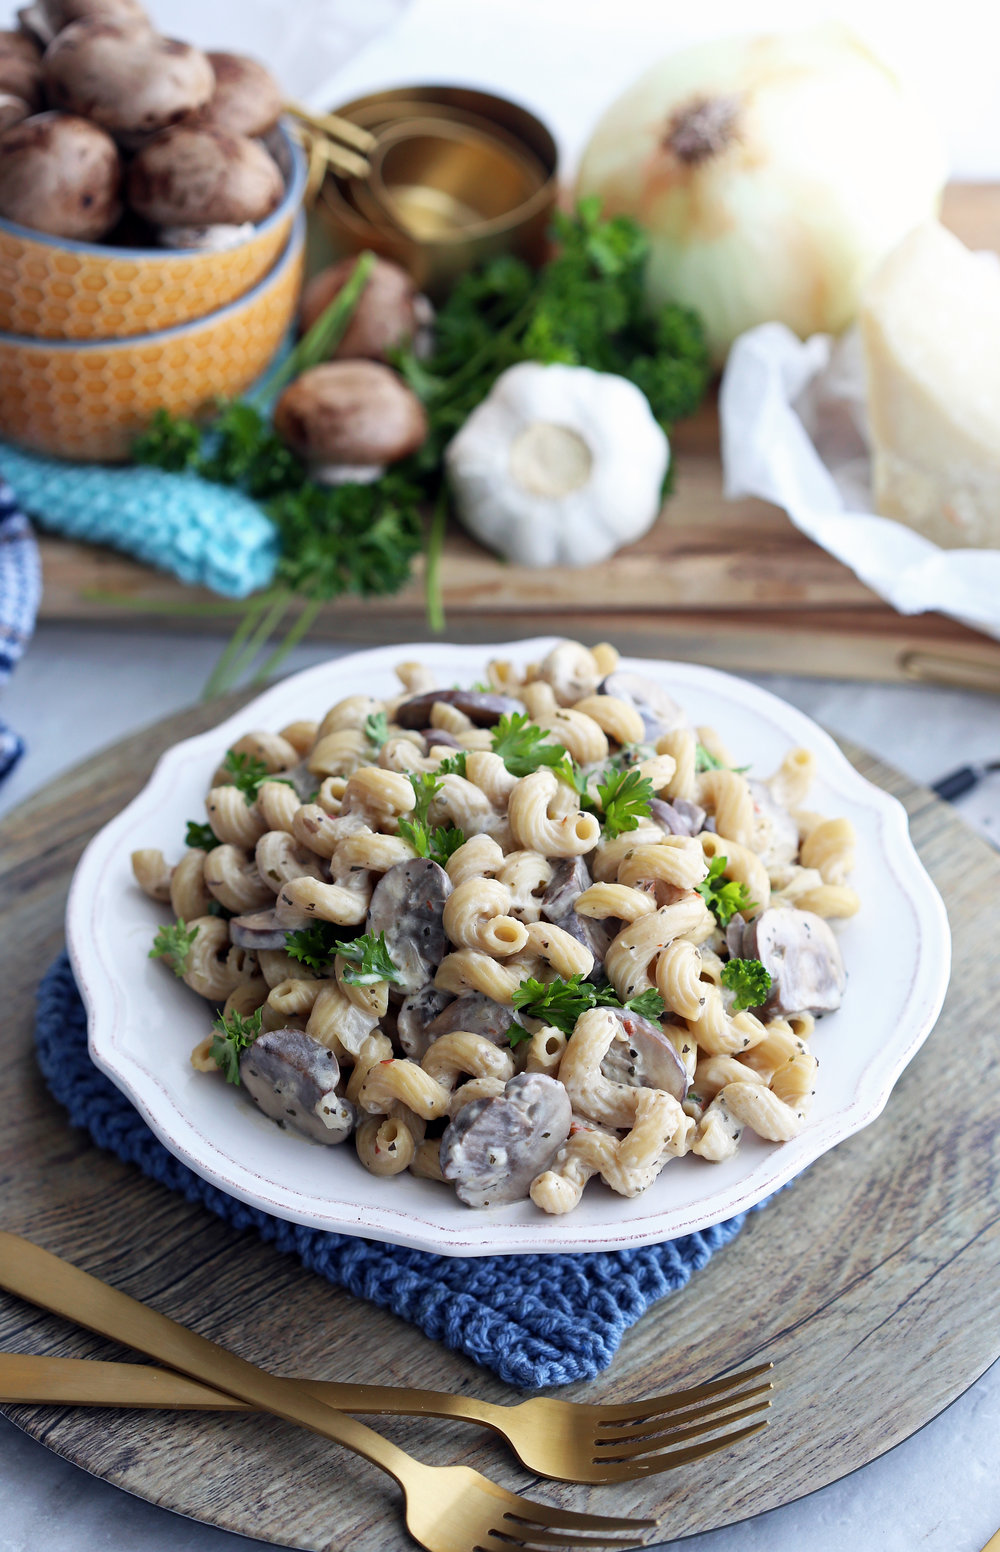 Cavatappi pasta with mushrooms, creamy parmesan sauce, and fresh parsley in a white pasta bowl.